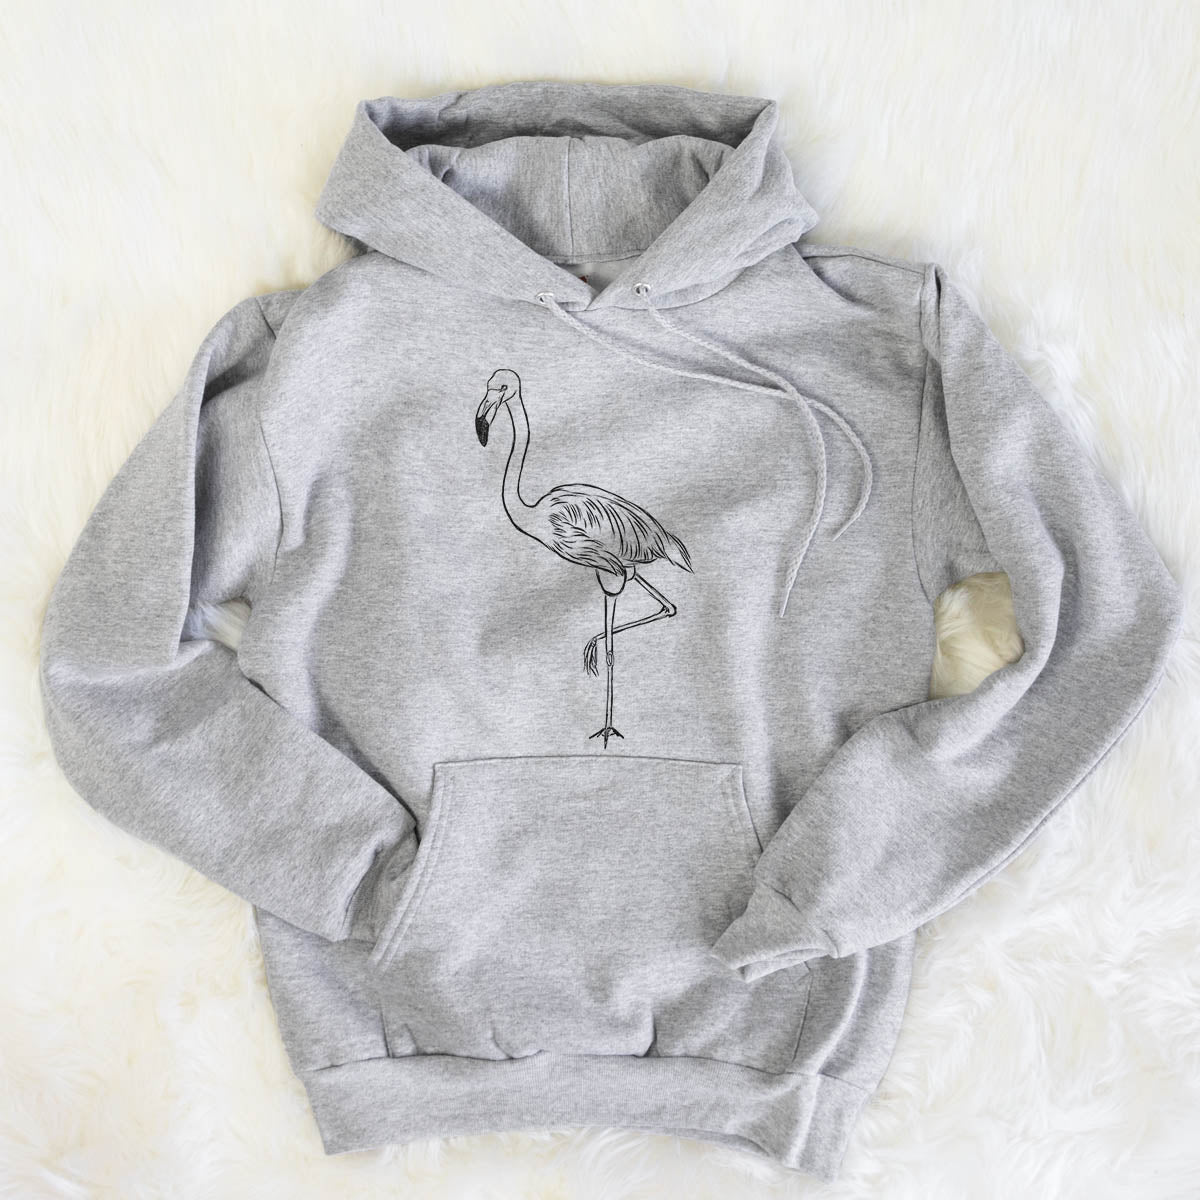 Mango the Flamingo - Mens Hooded Sweatshirt